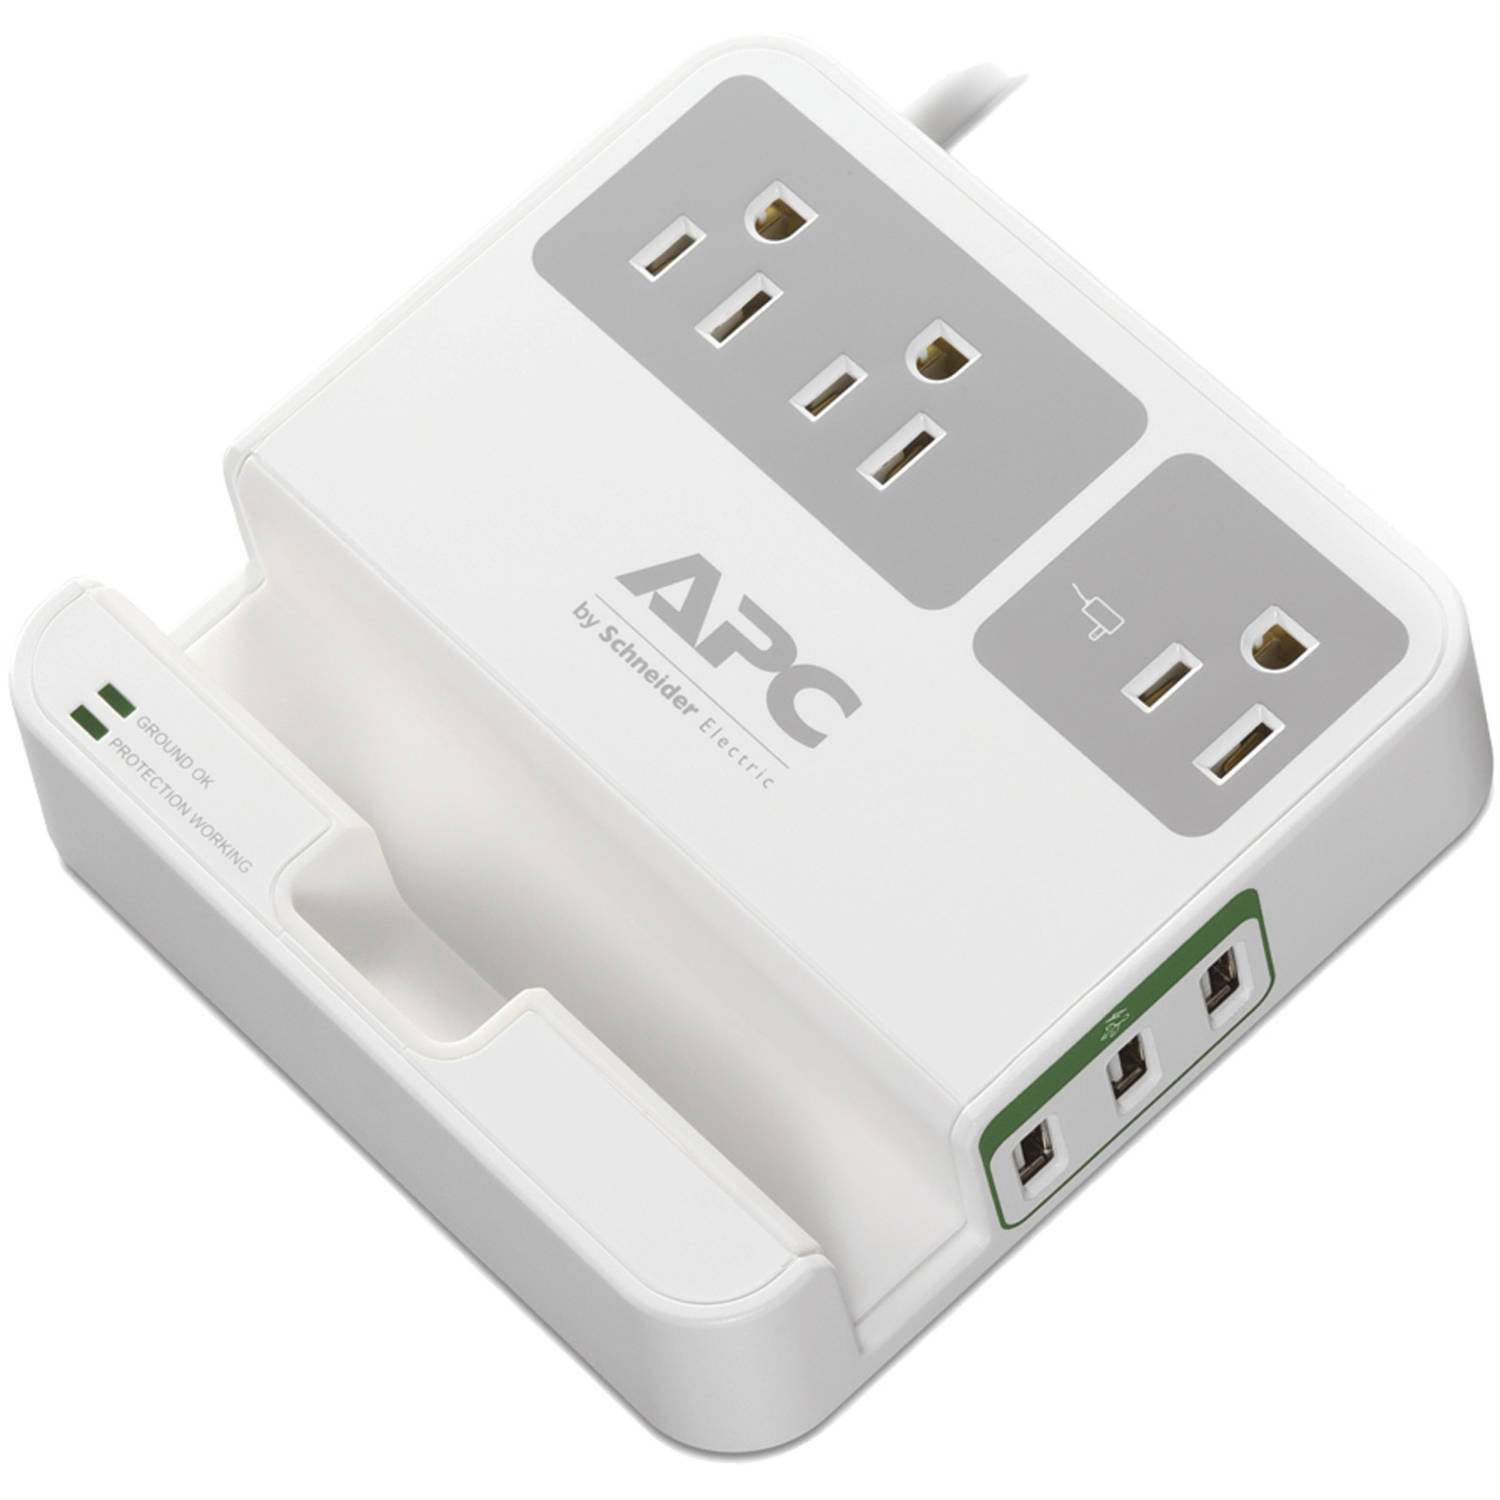 APC P3U3 3-Outlet SurgeArrest Surge Protector with 3 USB Ports, White